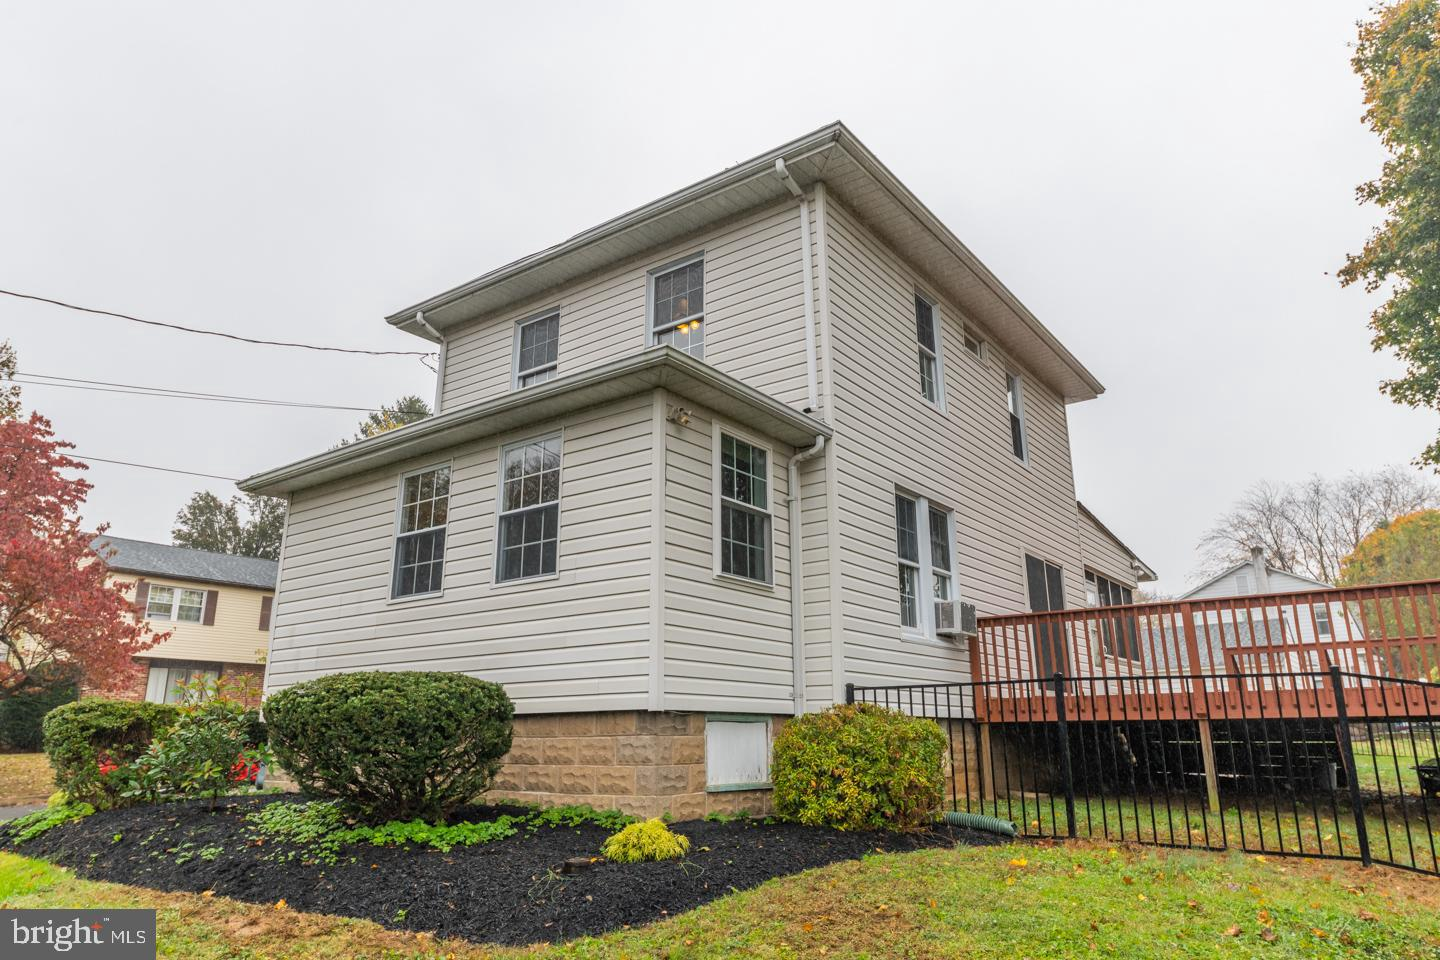 21 ELLIS ROAD, WILLOW GROVE, PA 19090